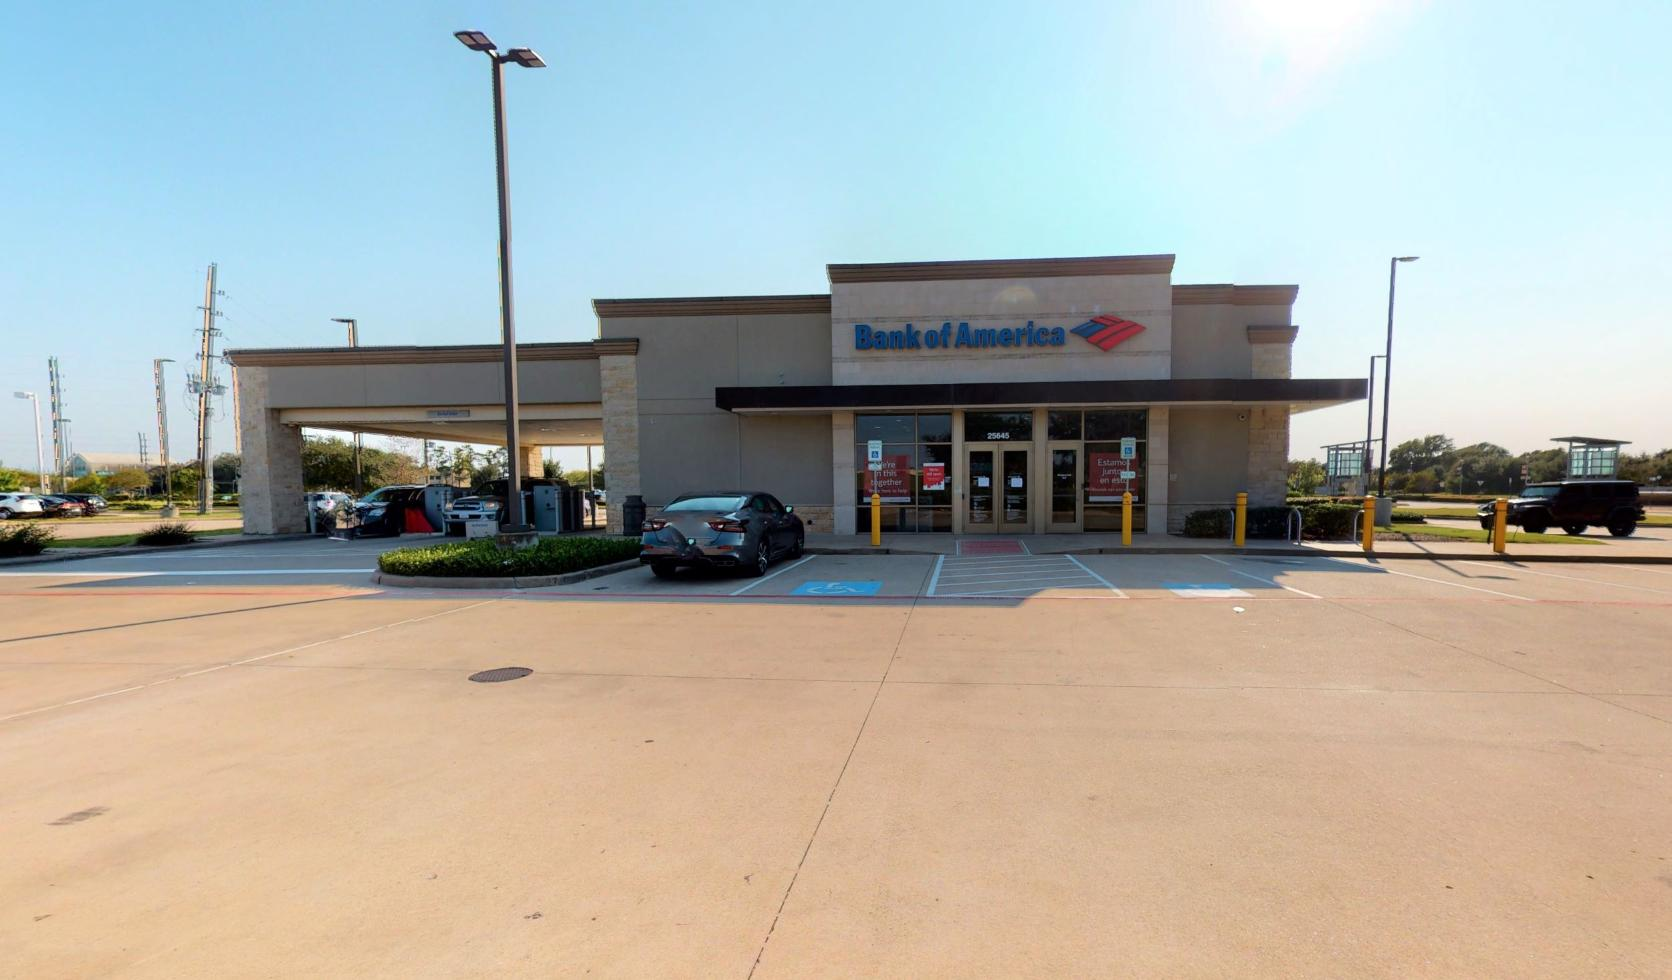 Bank of America financial center with drive-thru ATM   25645 Katy Fwy, Katy, TX 77494